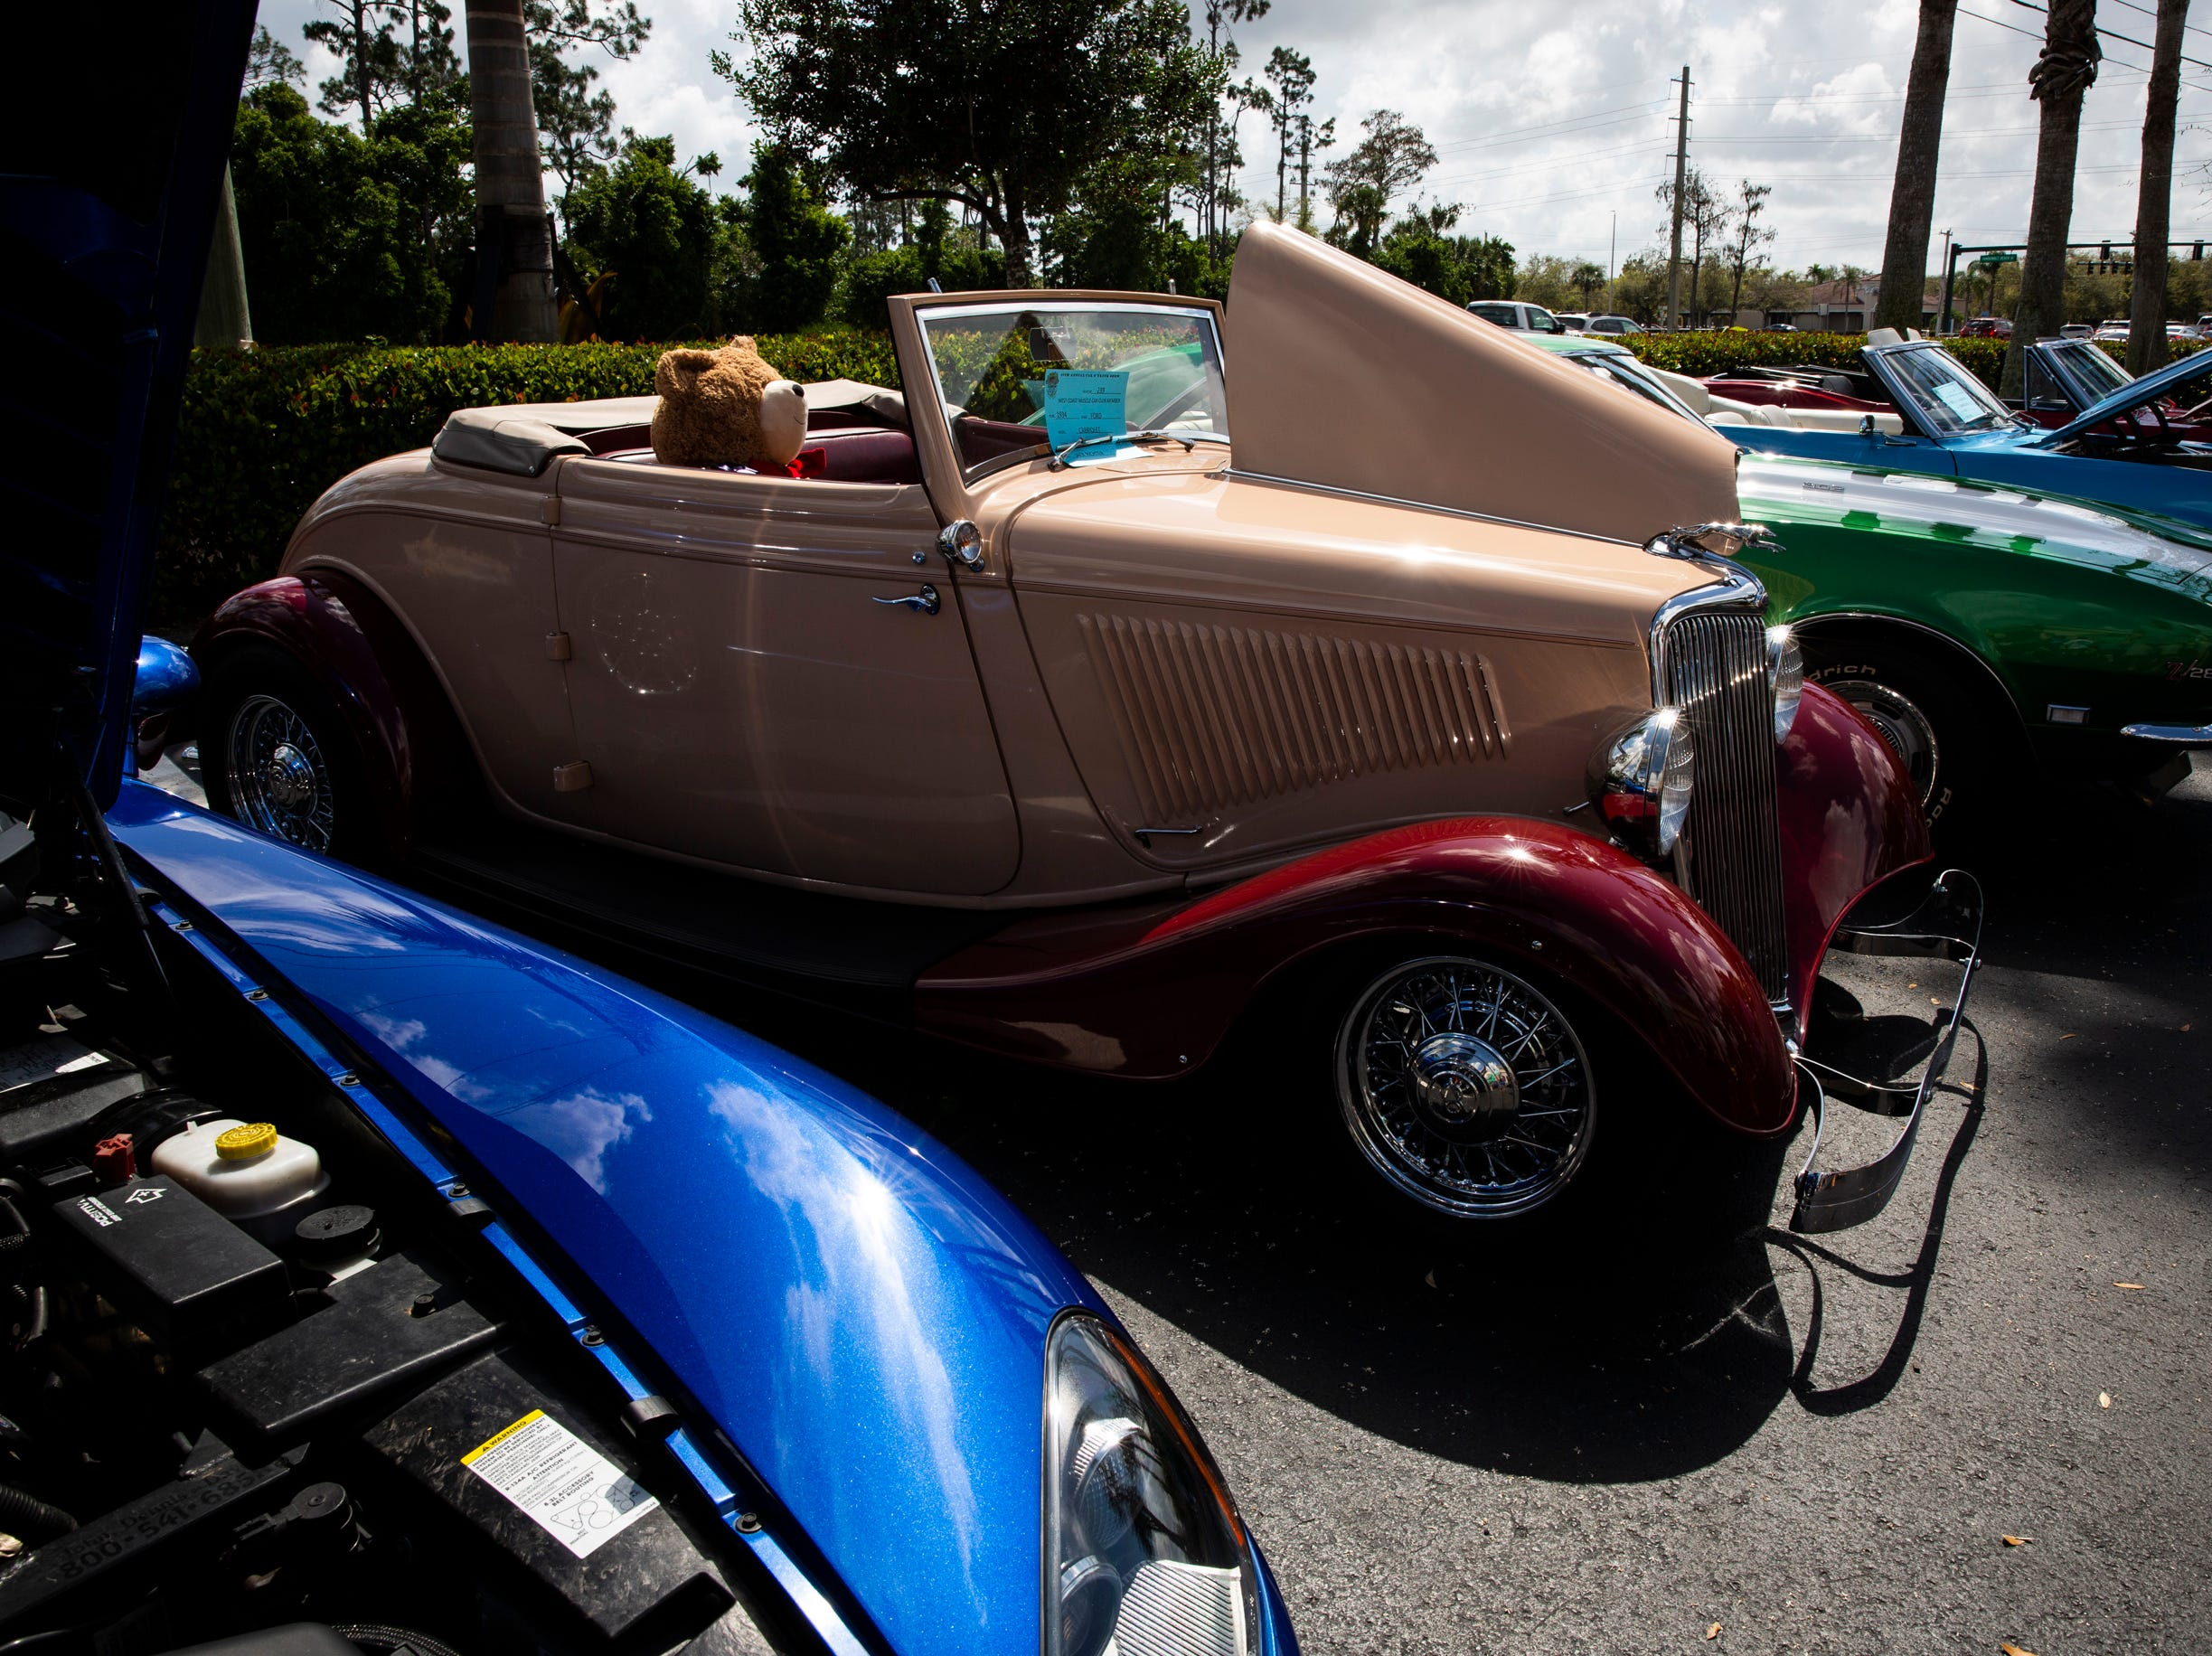 A row of cars sit on display during the West Coast Muscle Car Club's 15th annual car and truck show at the Galleria Shoppes at Vanderbilt in Naples on Sunday, March 10, 2019.